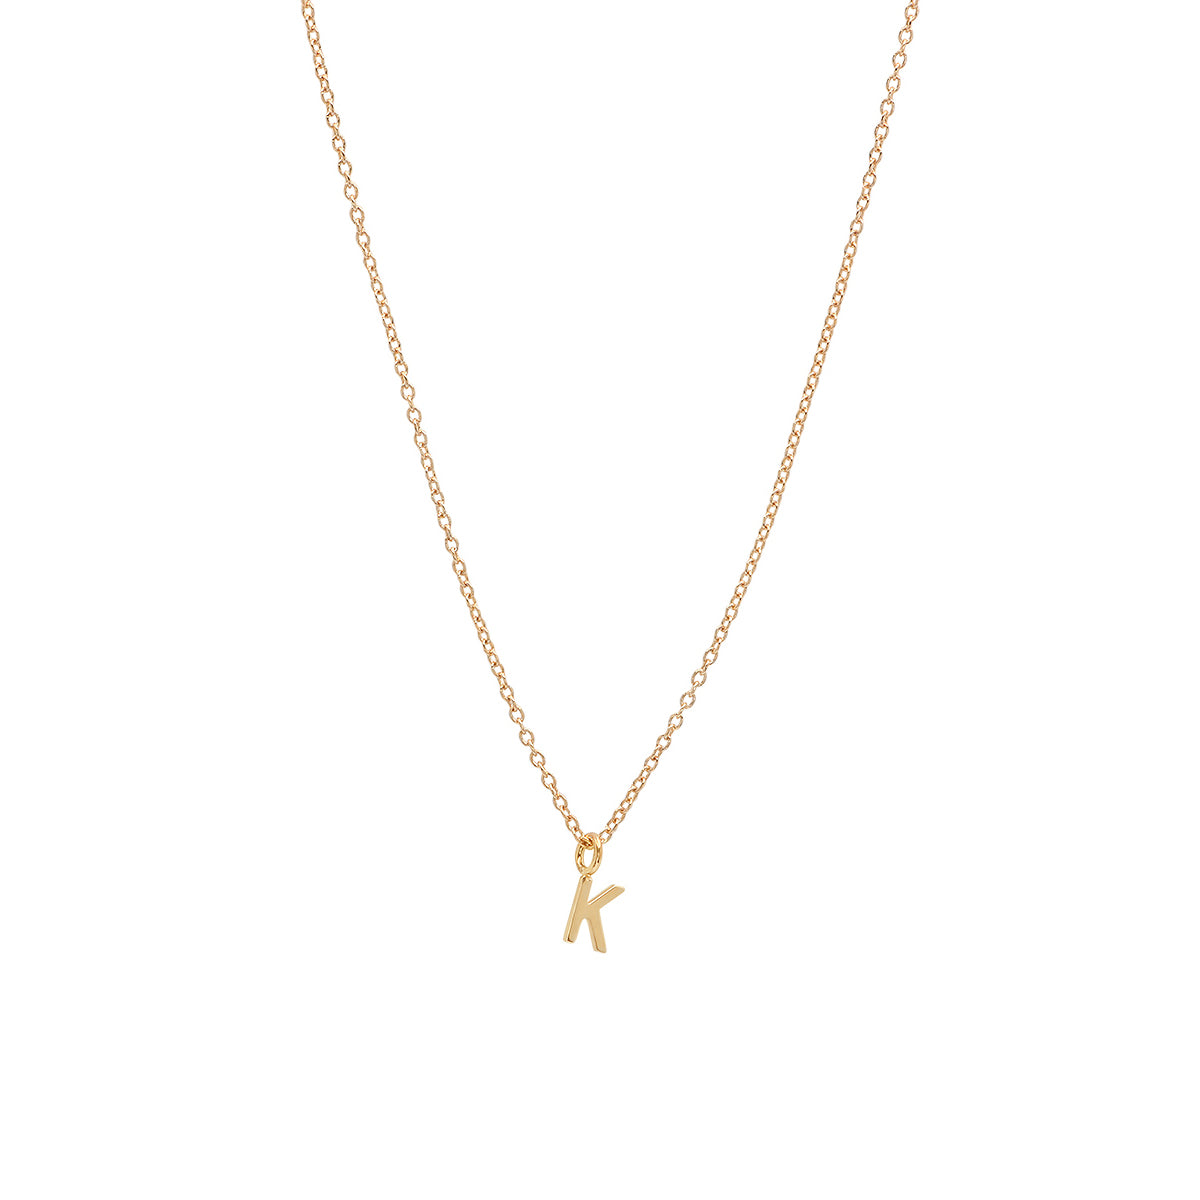 c2d260c5b2cce Initial Necklace – BYCHARI